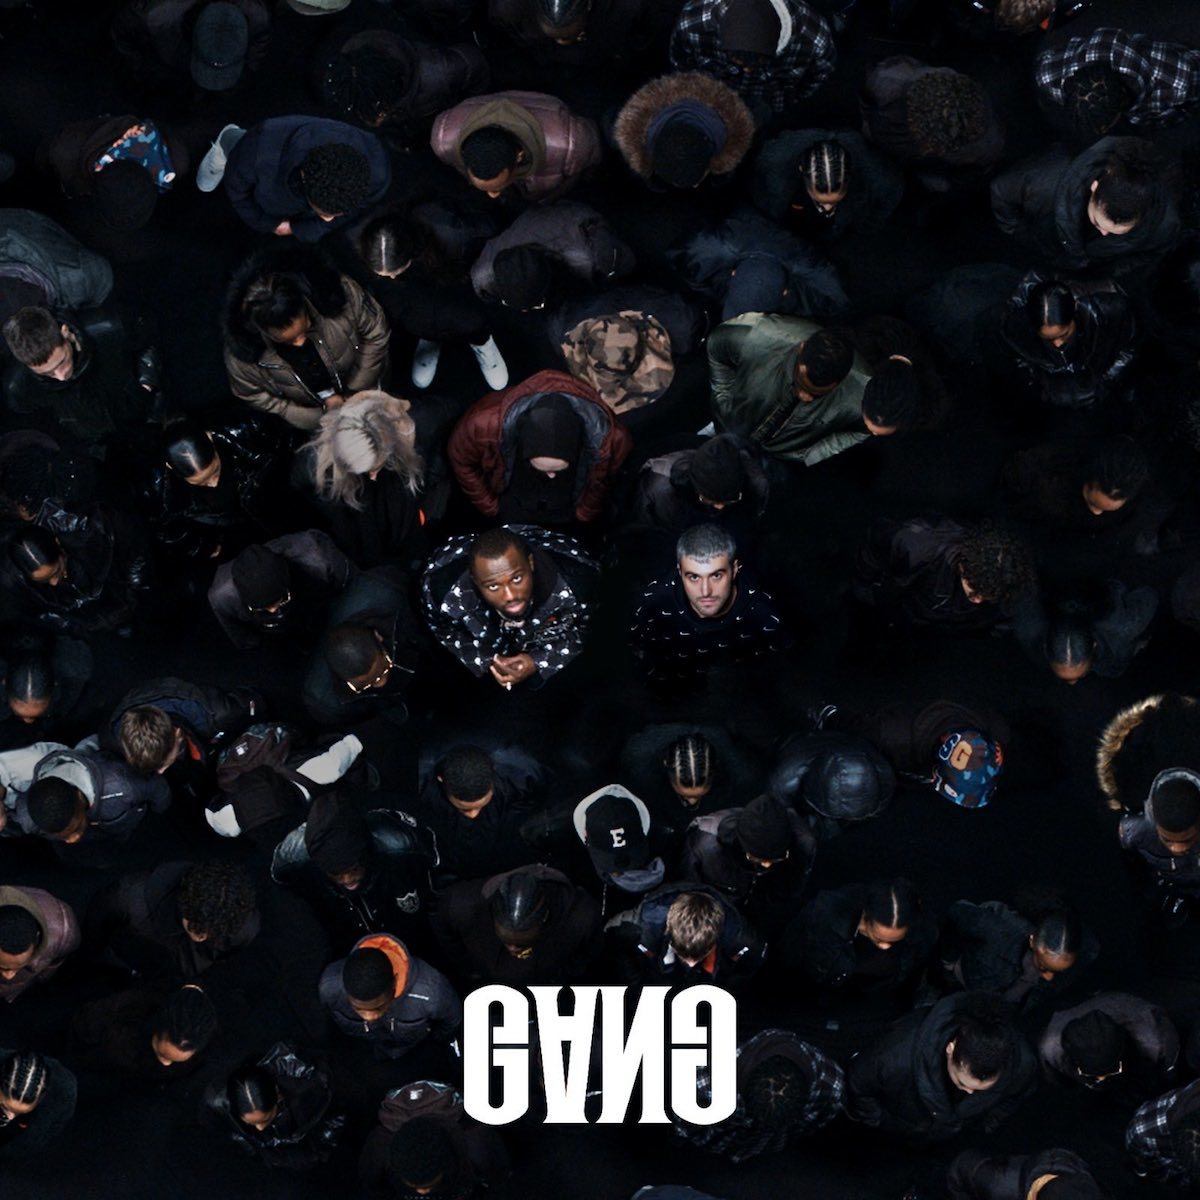 Headie One And Fred Again Announce New Mixtape 'Gang' With FKA Twigs, Jamie xx, Sampha And More